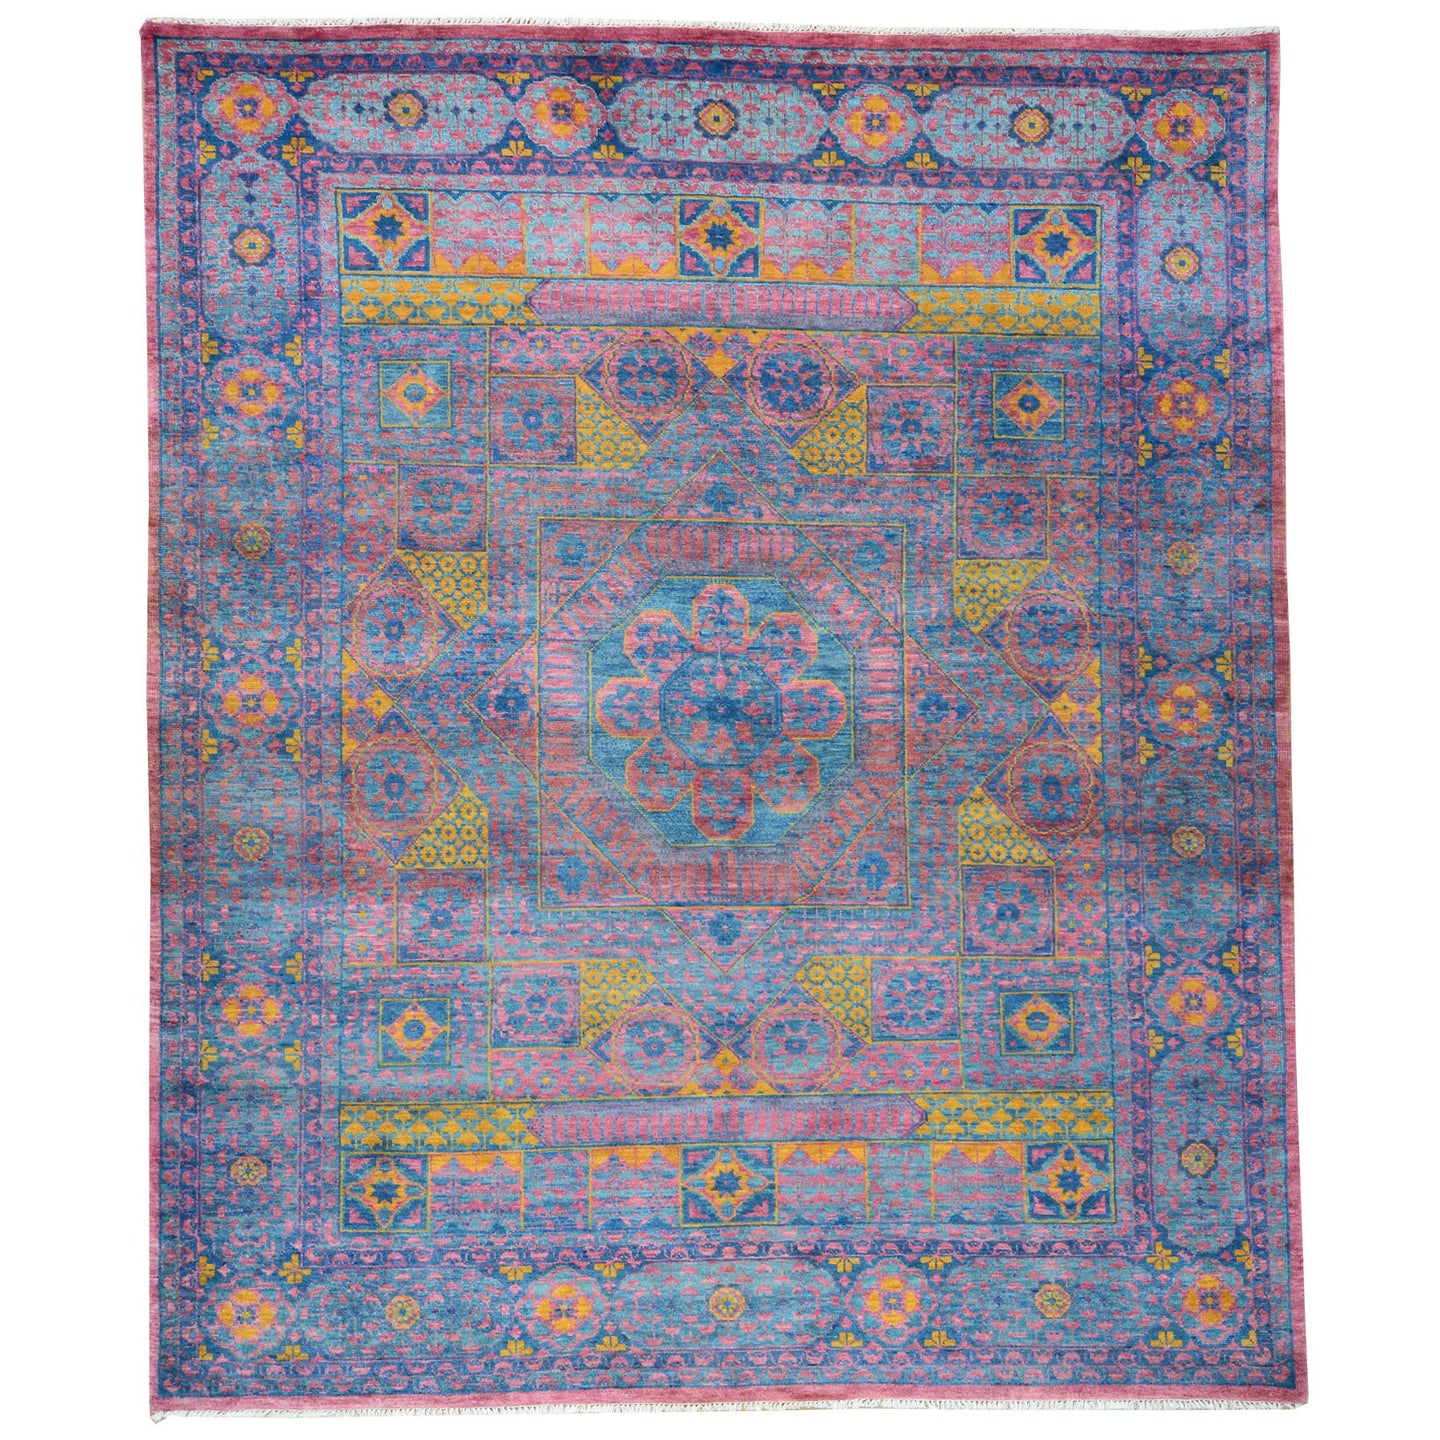 Oriental rugs, hand-knotted carpets, sustainable rugs, classic world oriental rugs, handmade, United States, interior design,  Brral-1050